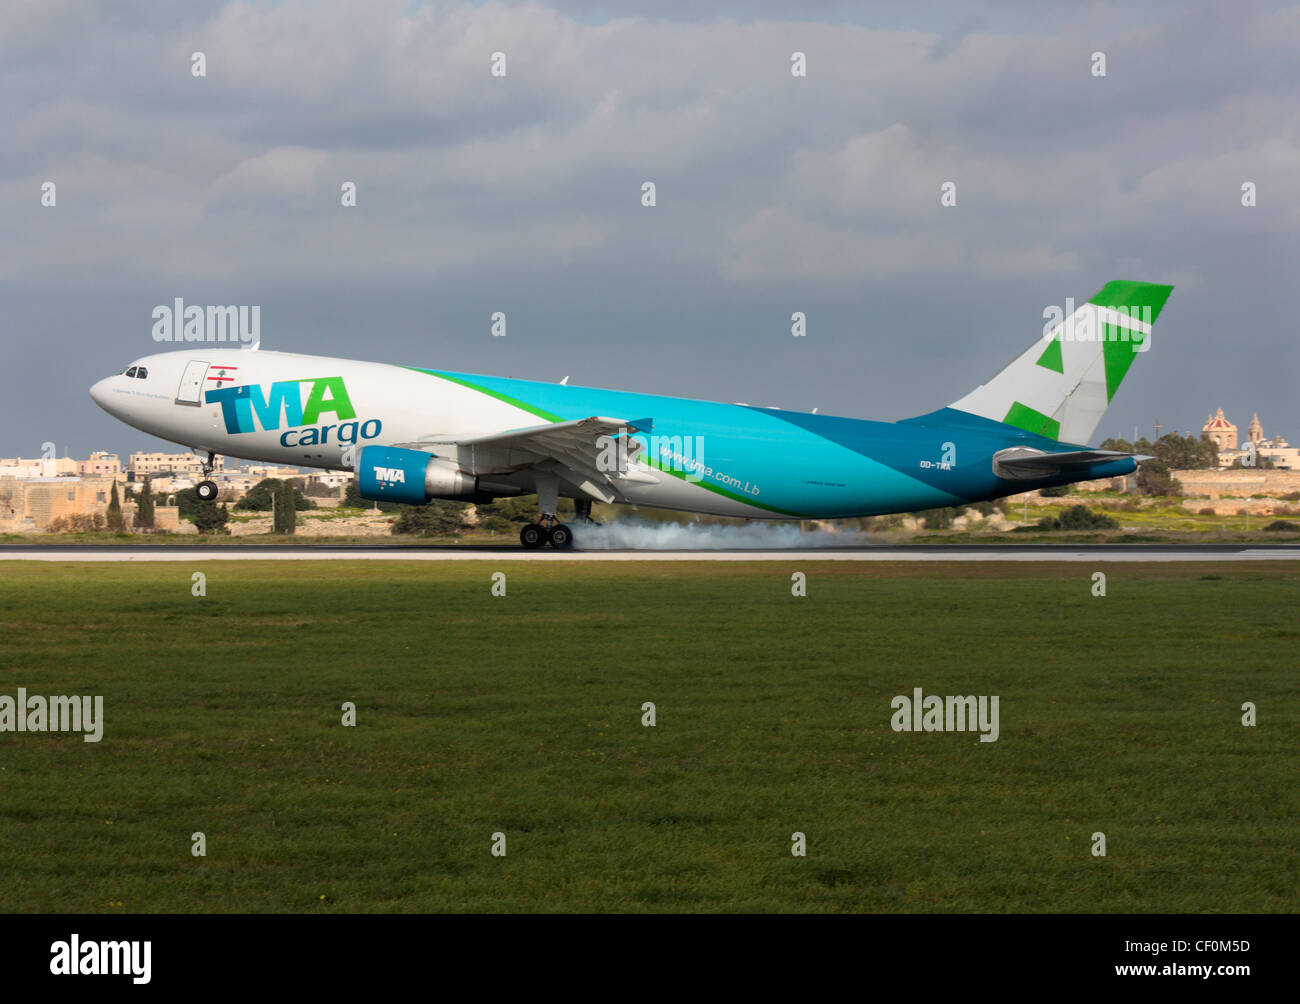 TMA Cargo Airbus A300-600F touching down at Malta International Airport - Stock Image